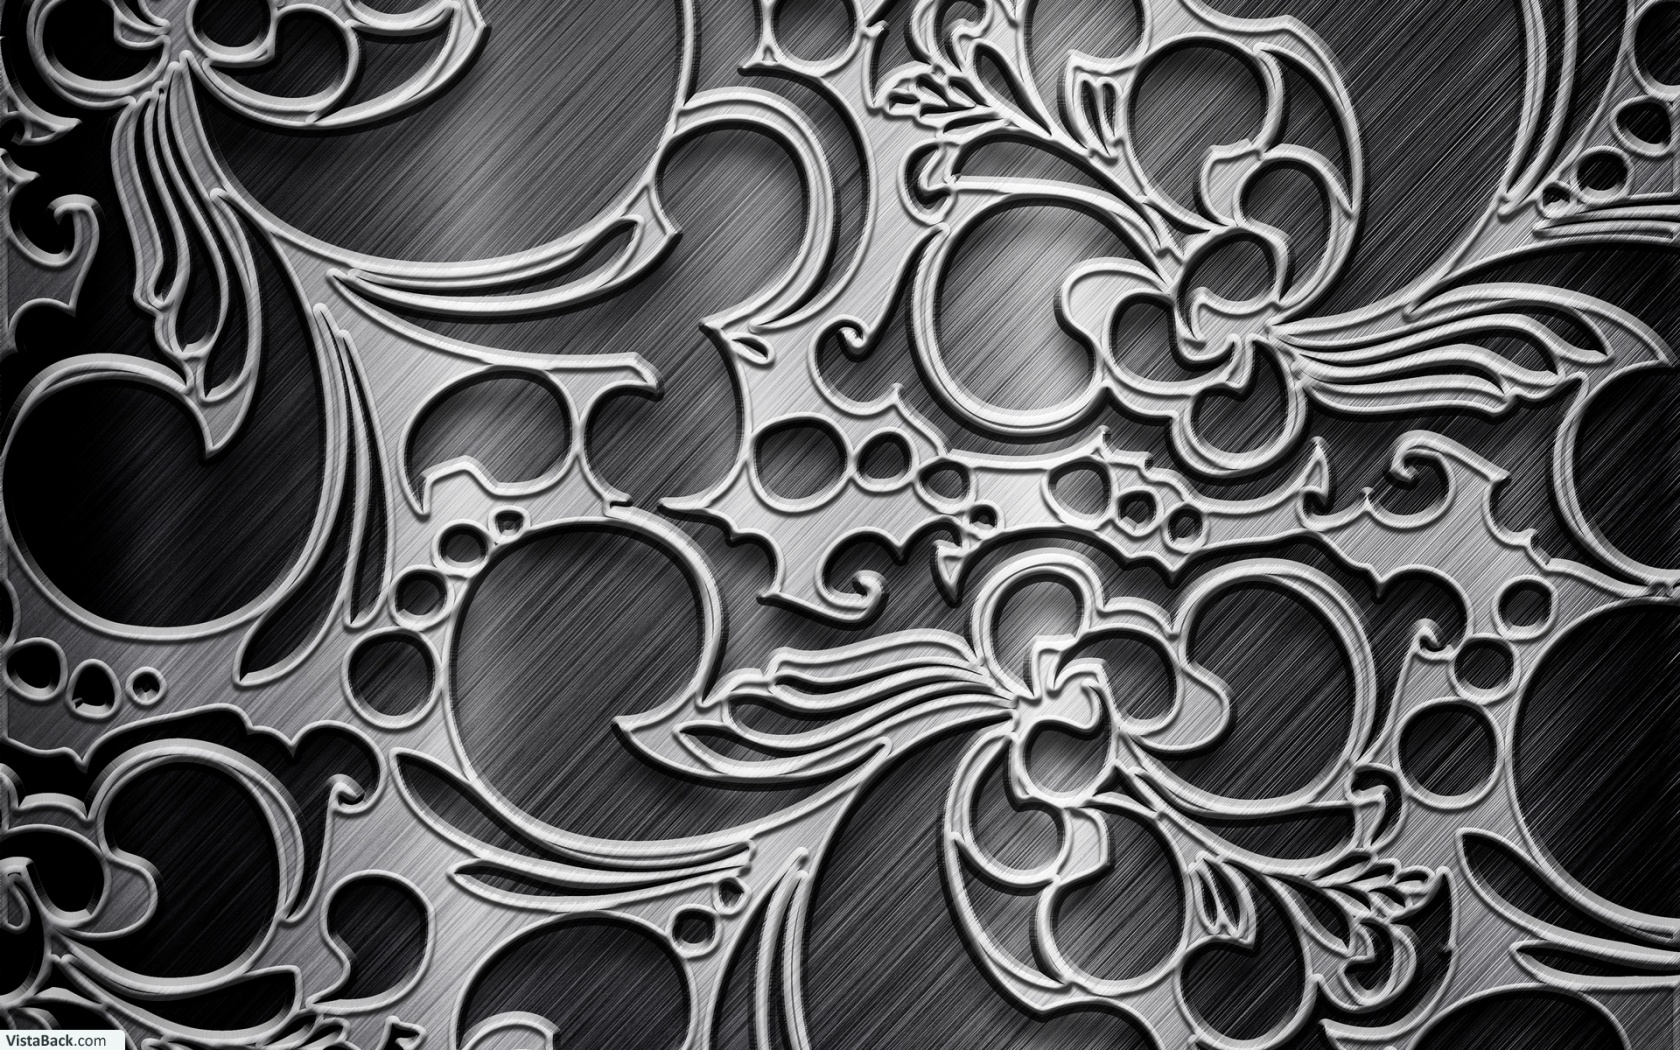 Black And Silver Online Images 4 Widescreen Wallpaper